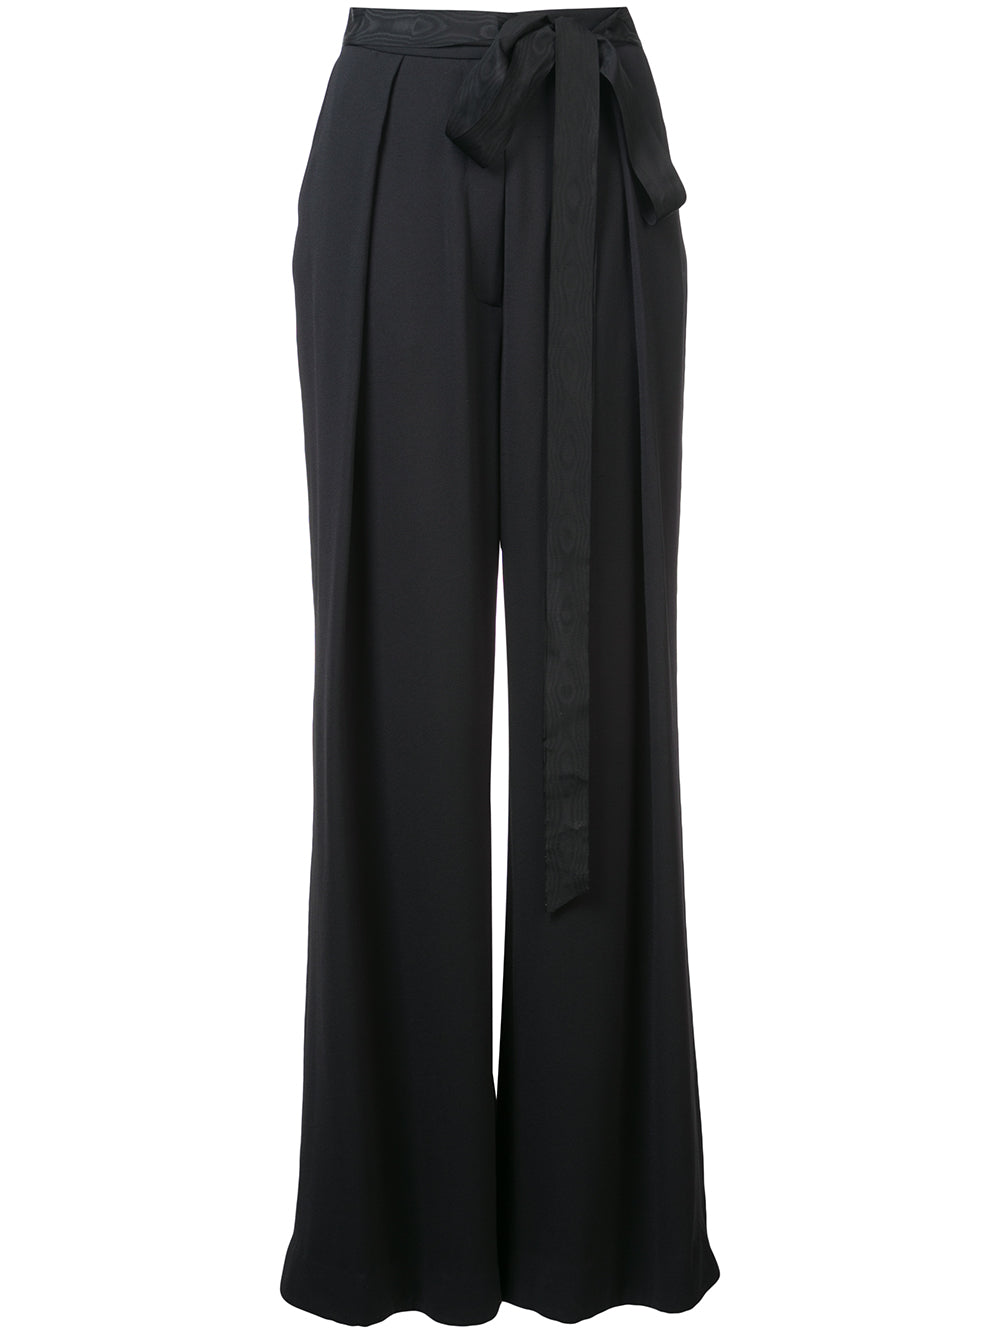 STRETCH CREPE TROUSER WITH INVERTED PLEATS